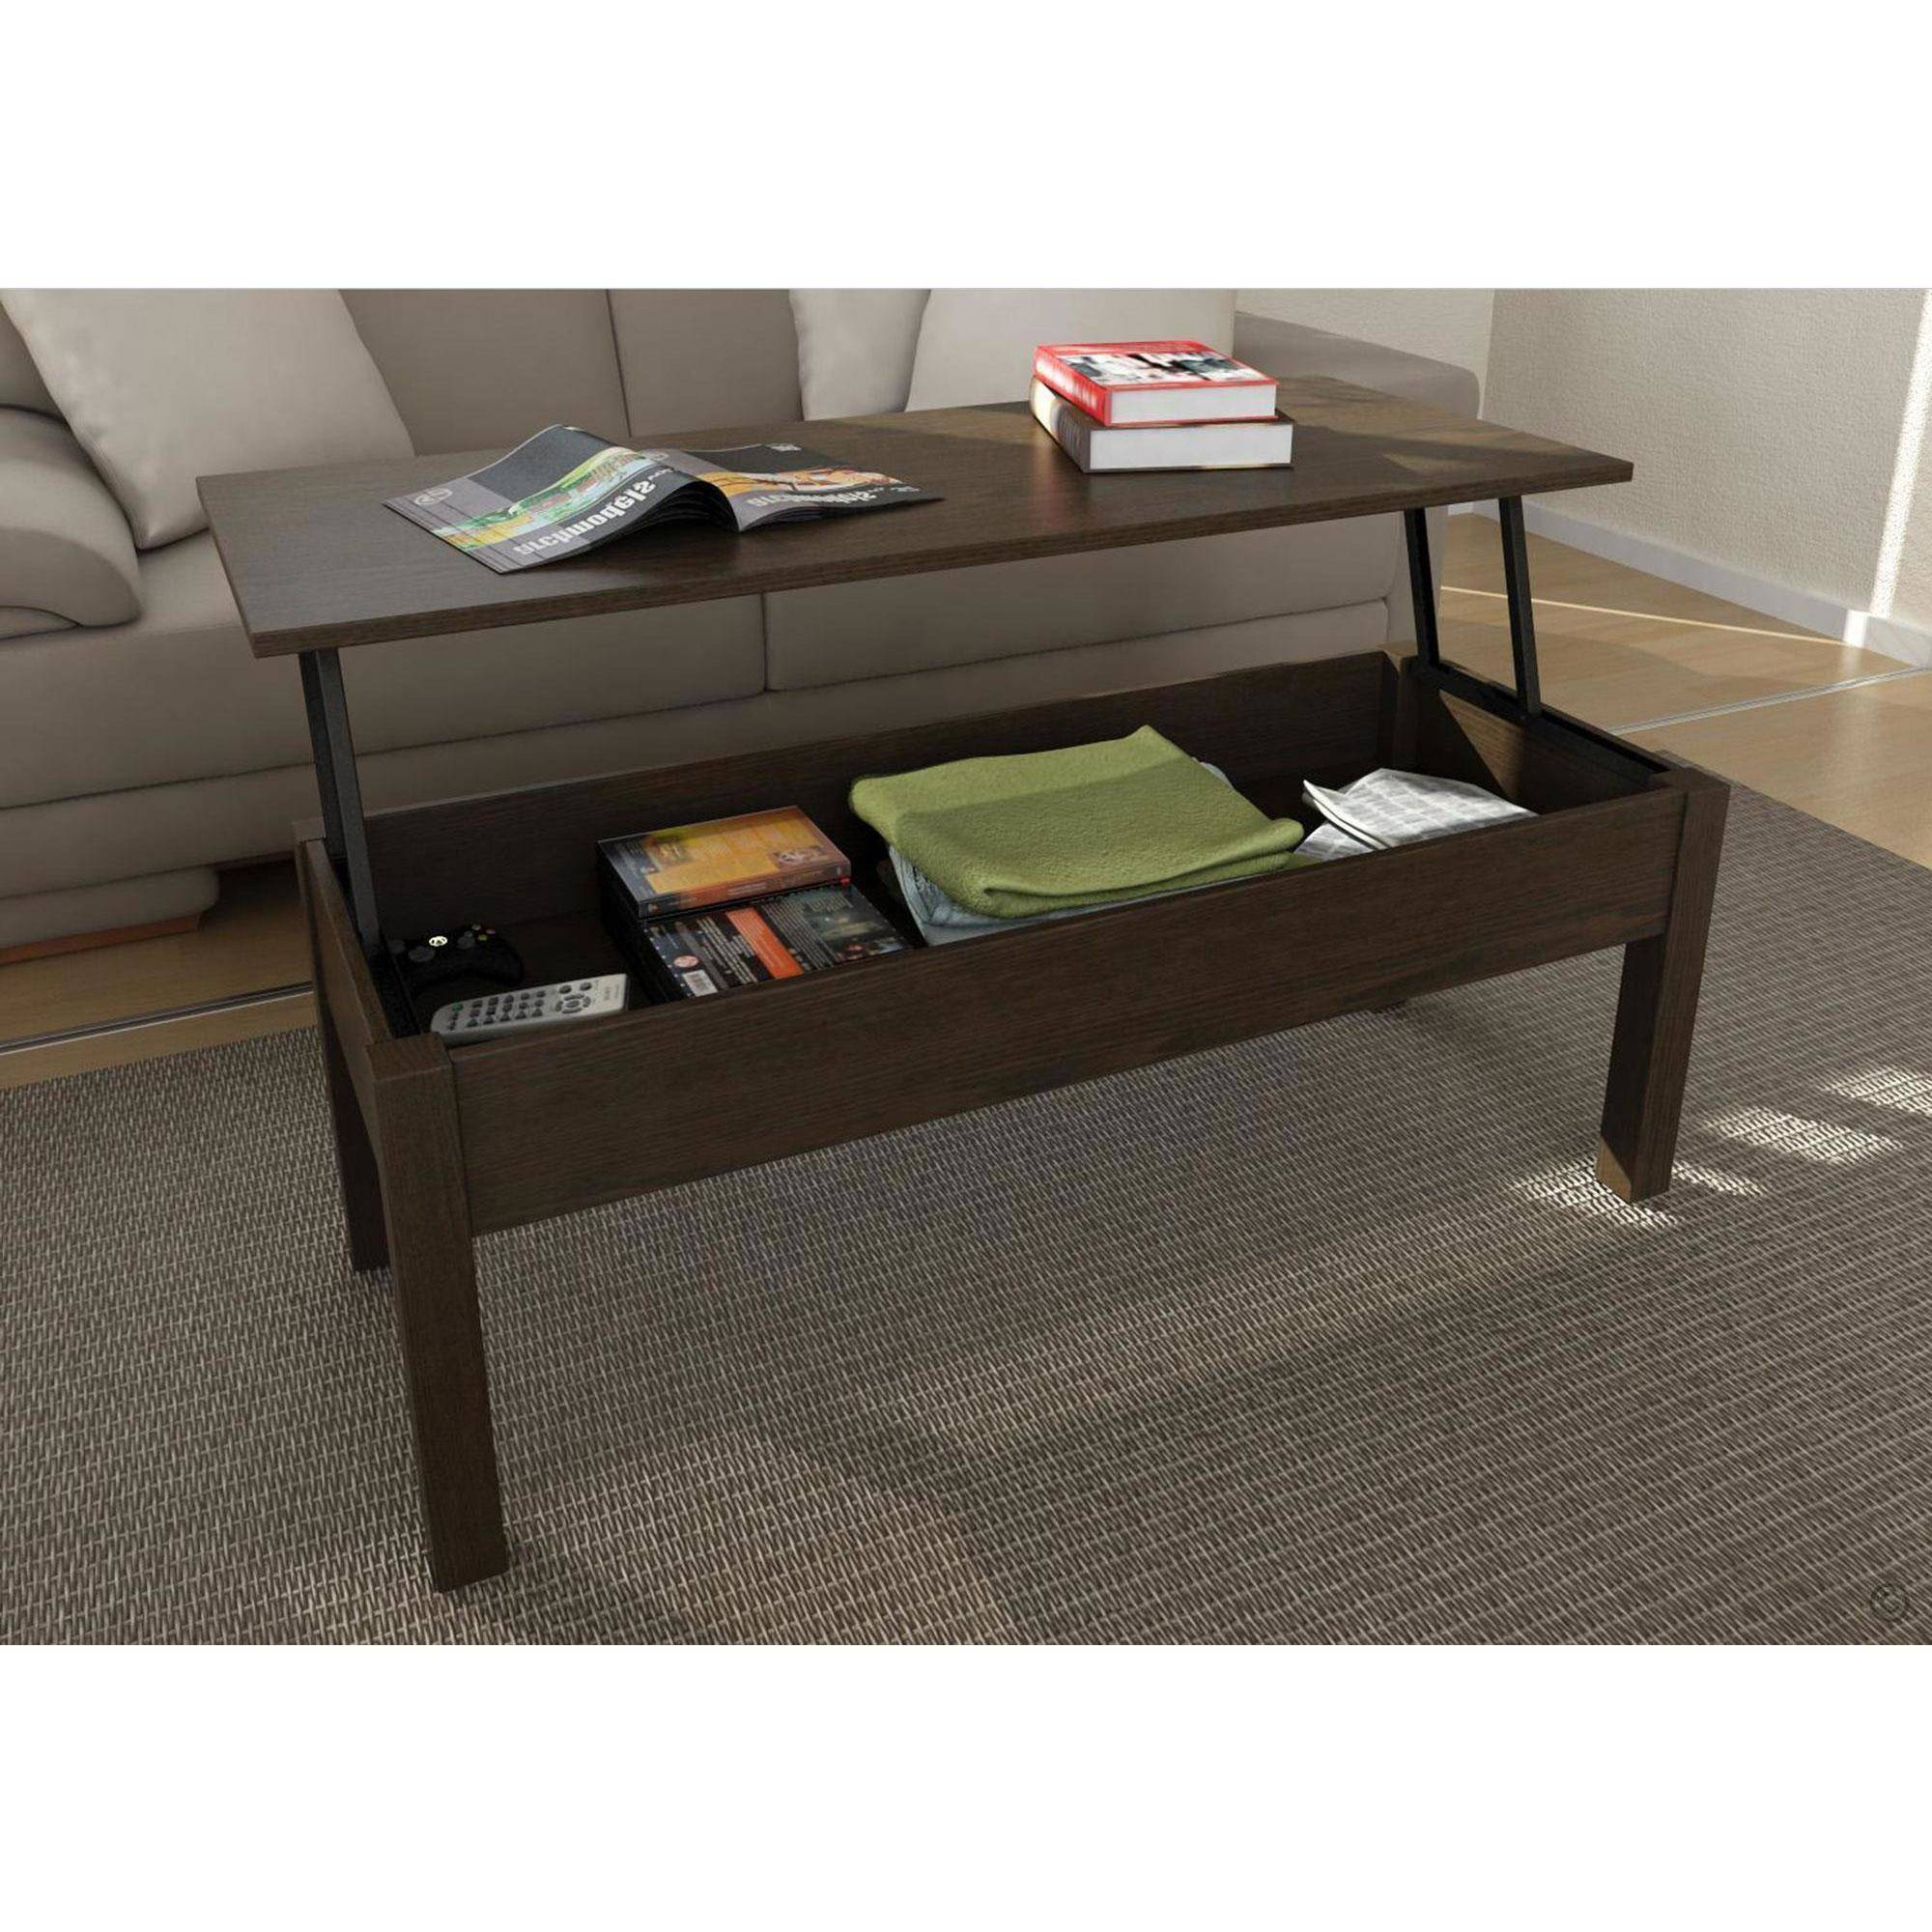 Mainstays LiftTop Coffee Table Multiple Colors Walmartcom